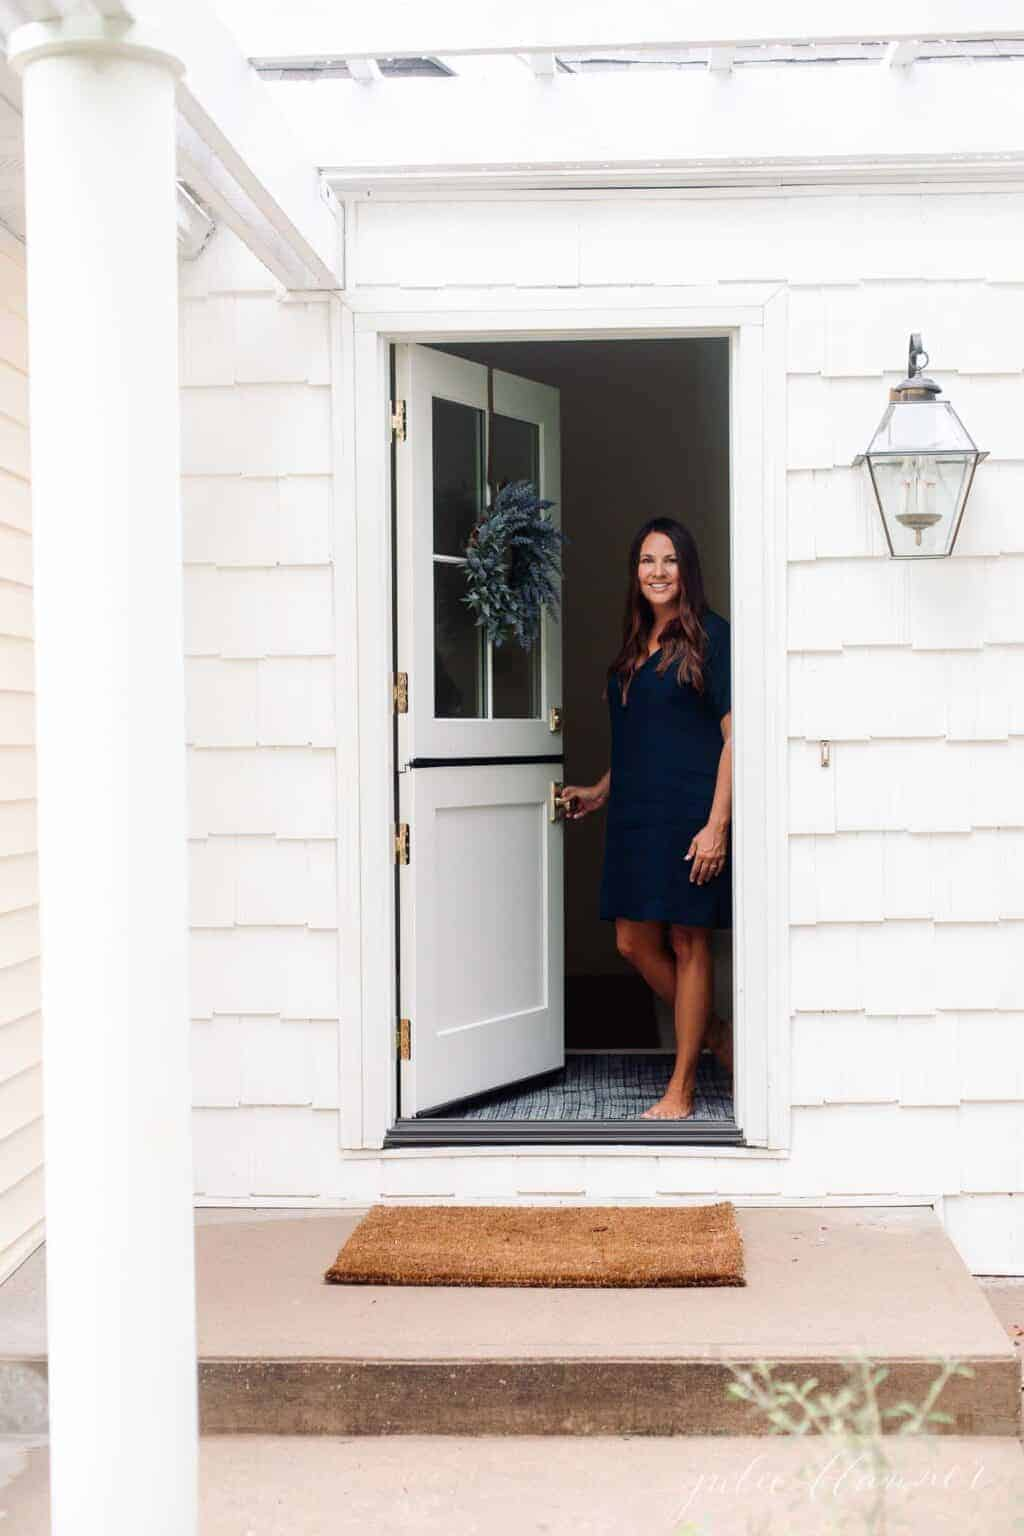 A white cottage with a pretty white dutch door, a woman in a navy dress standing at entry with door open.